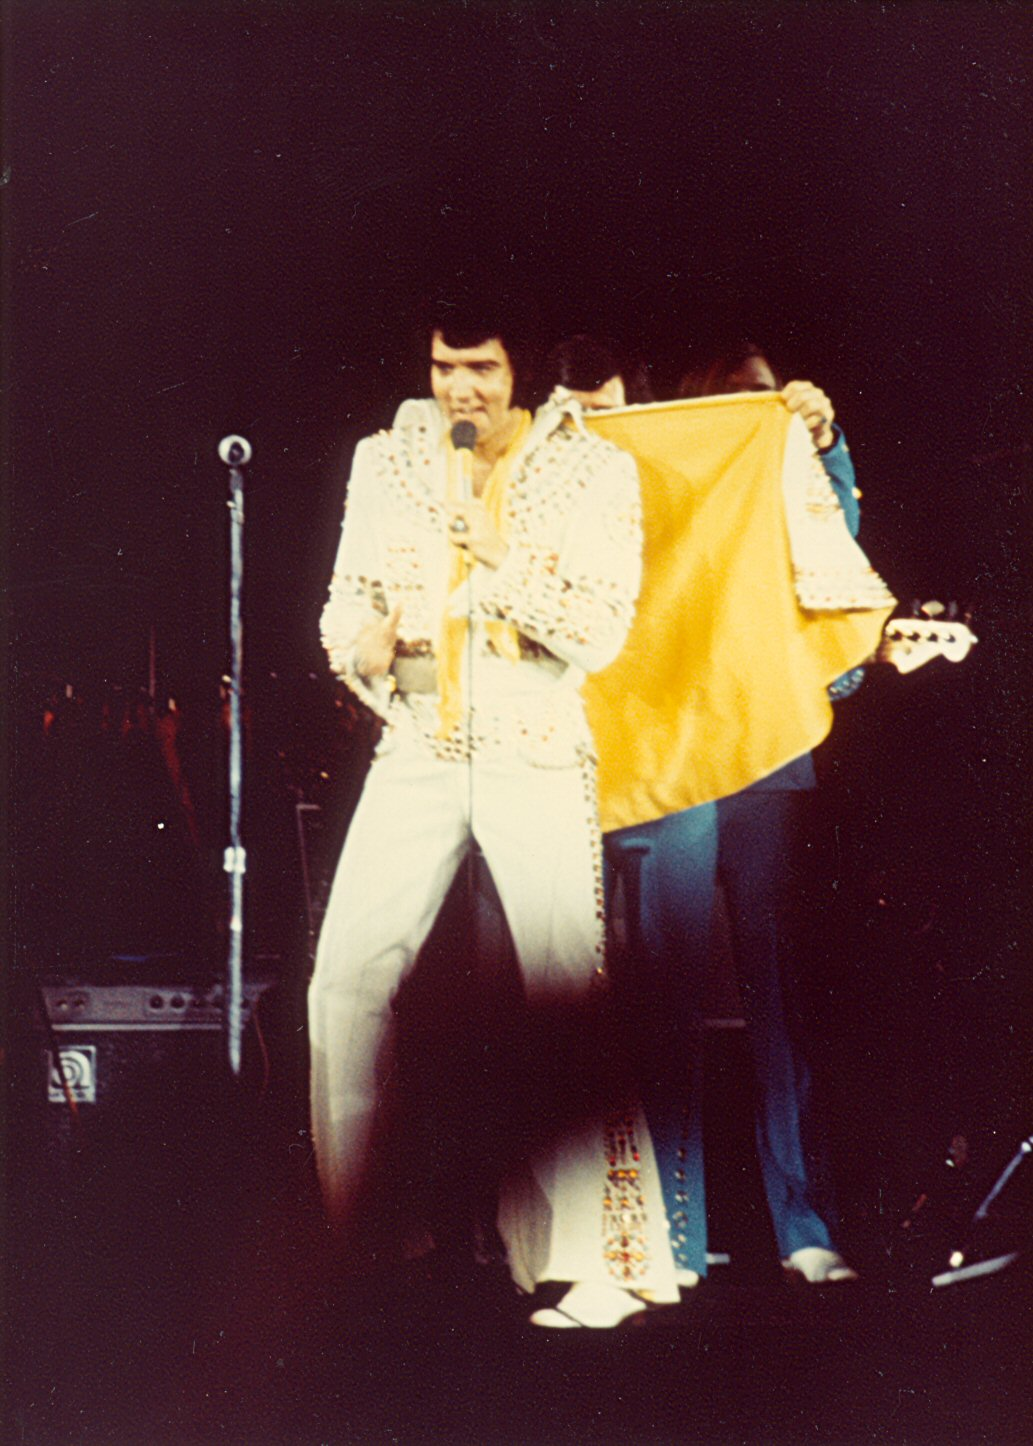 https://i0.wp.com/www.elvisconcerts.com/pictures/s73062203.jpg